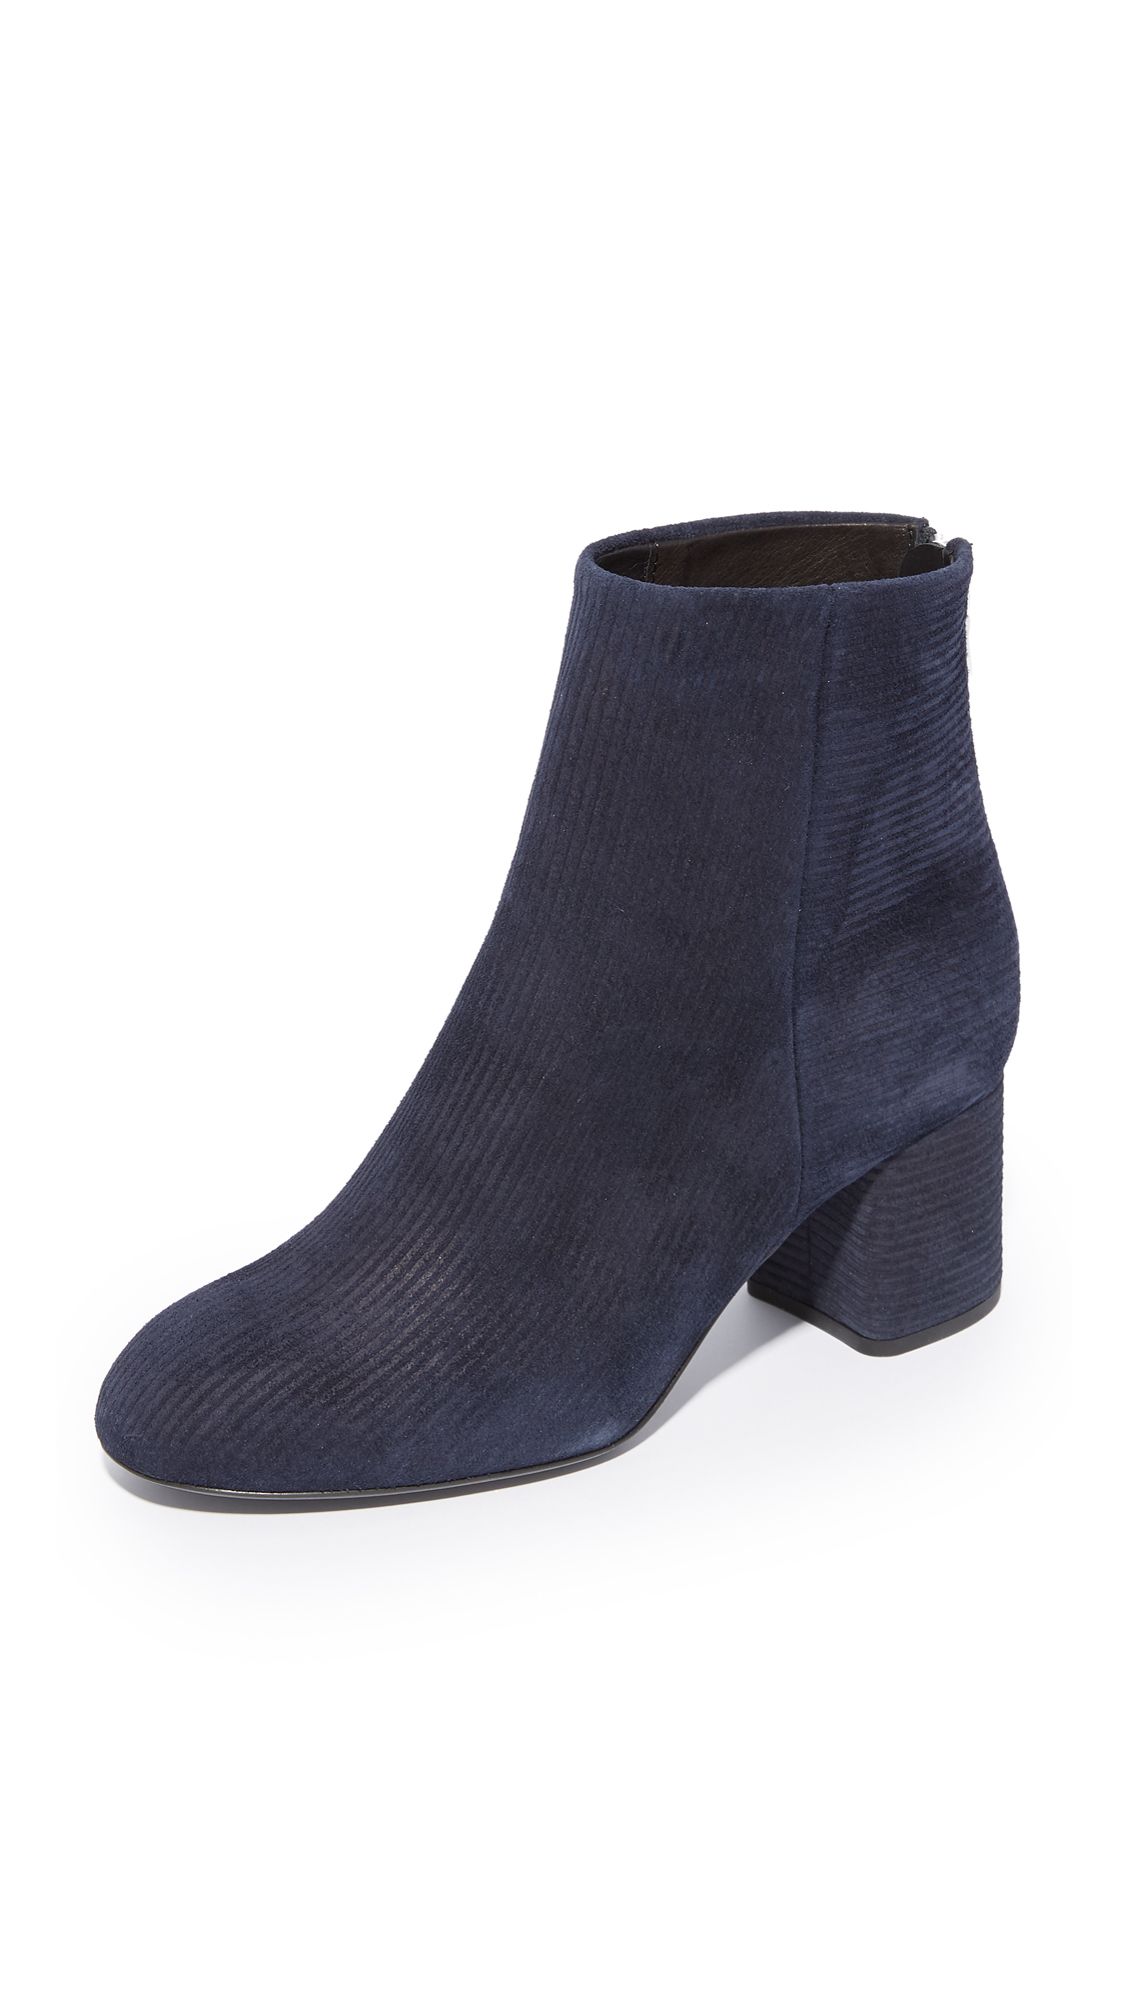 Rag & Bone Drea Booties - Navy